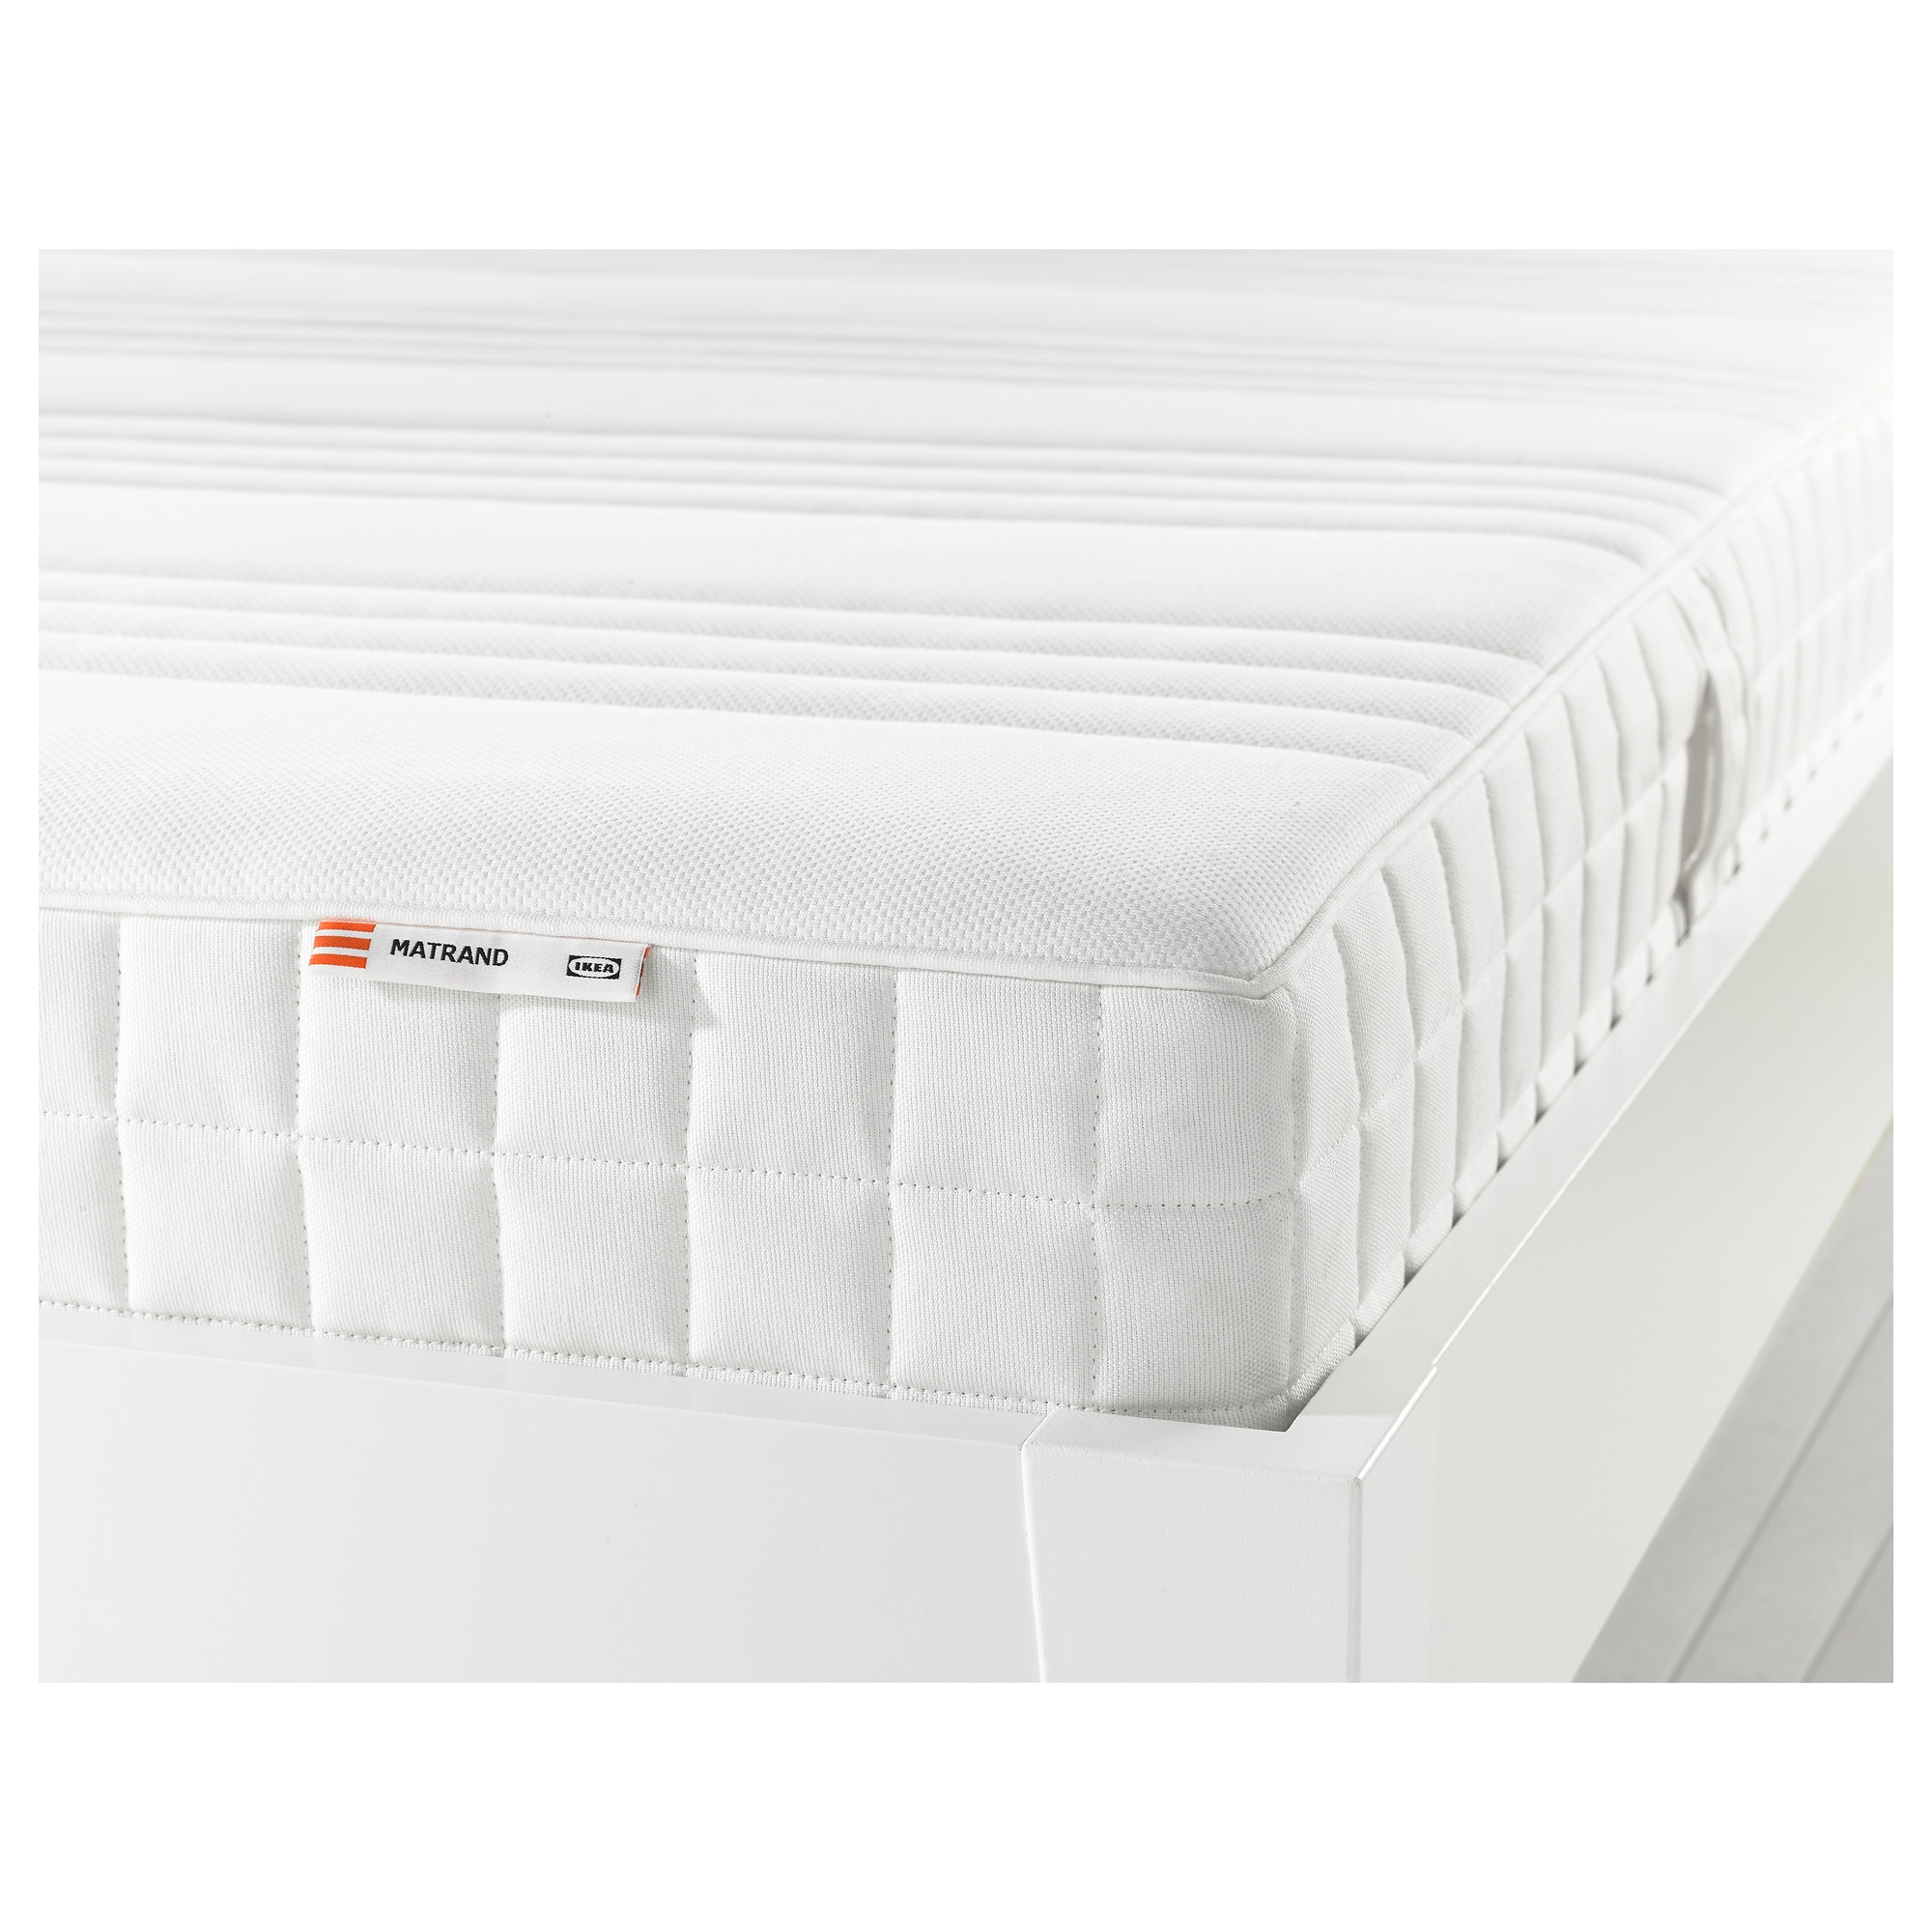 Memory foam mattress MATRAND firm, white